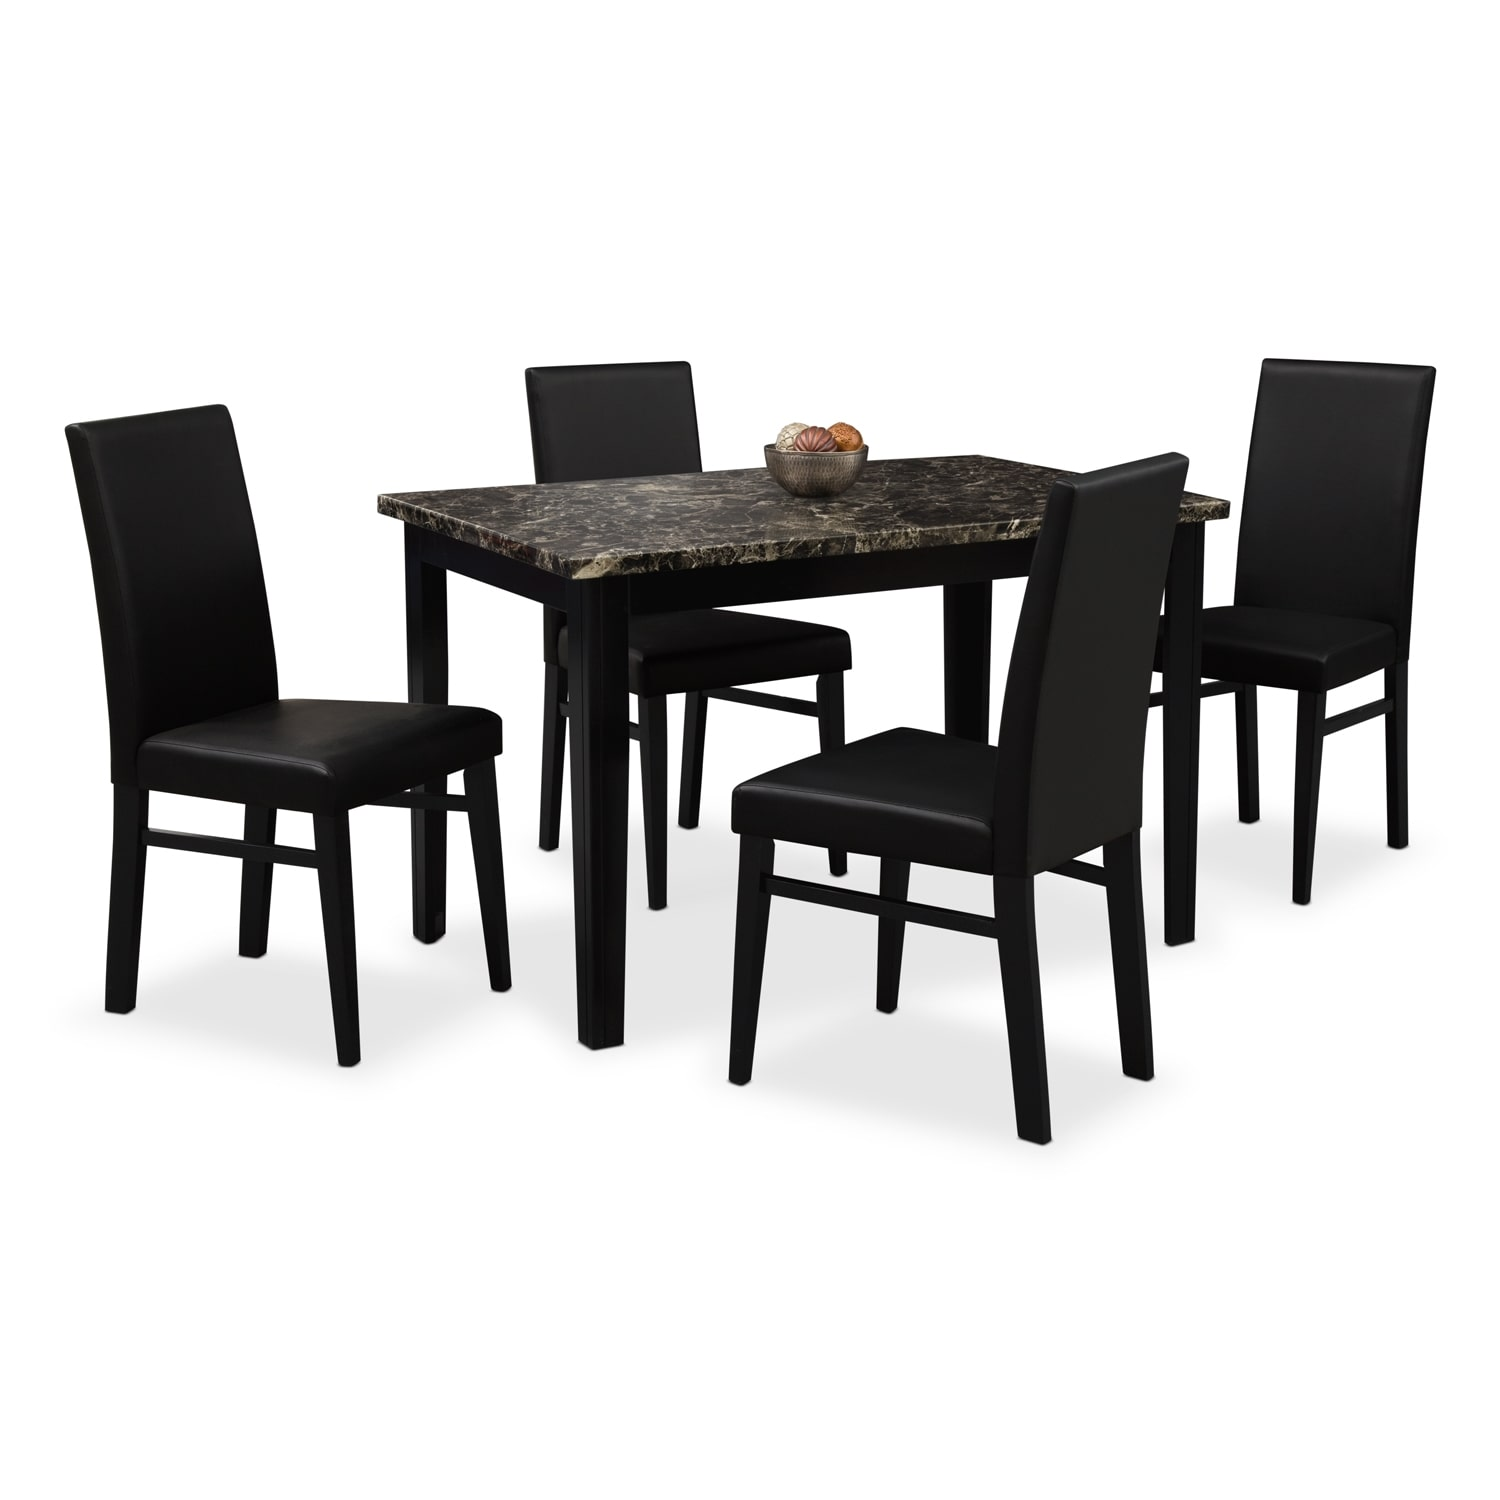 Dining Room Furniture - Shadow Table and 4 Chairs - Black